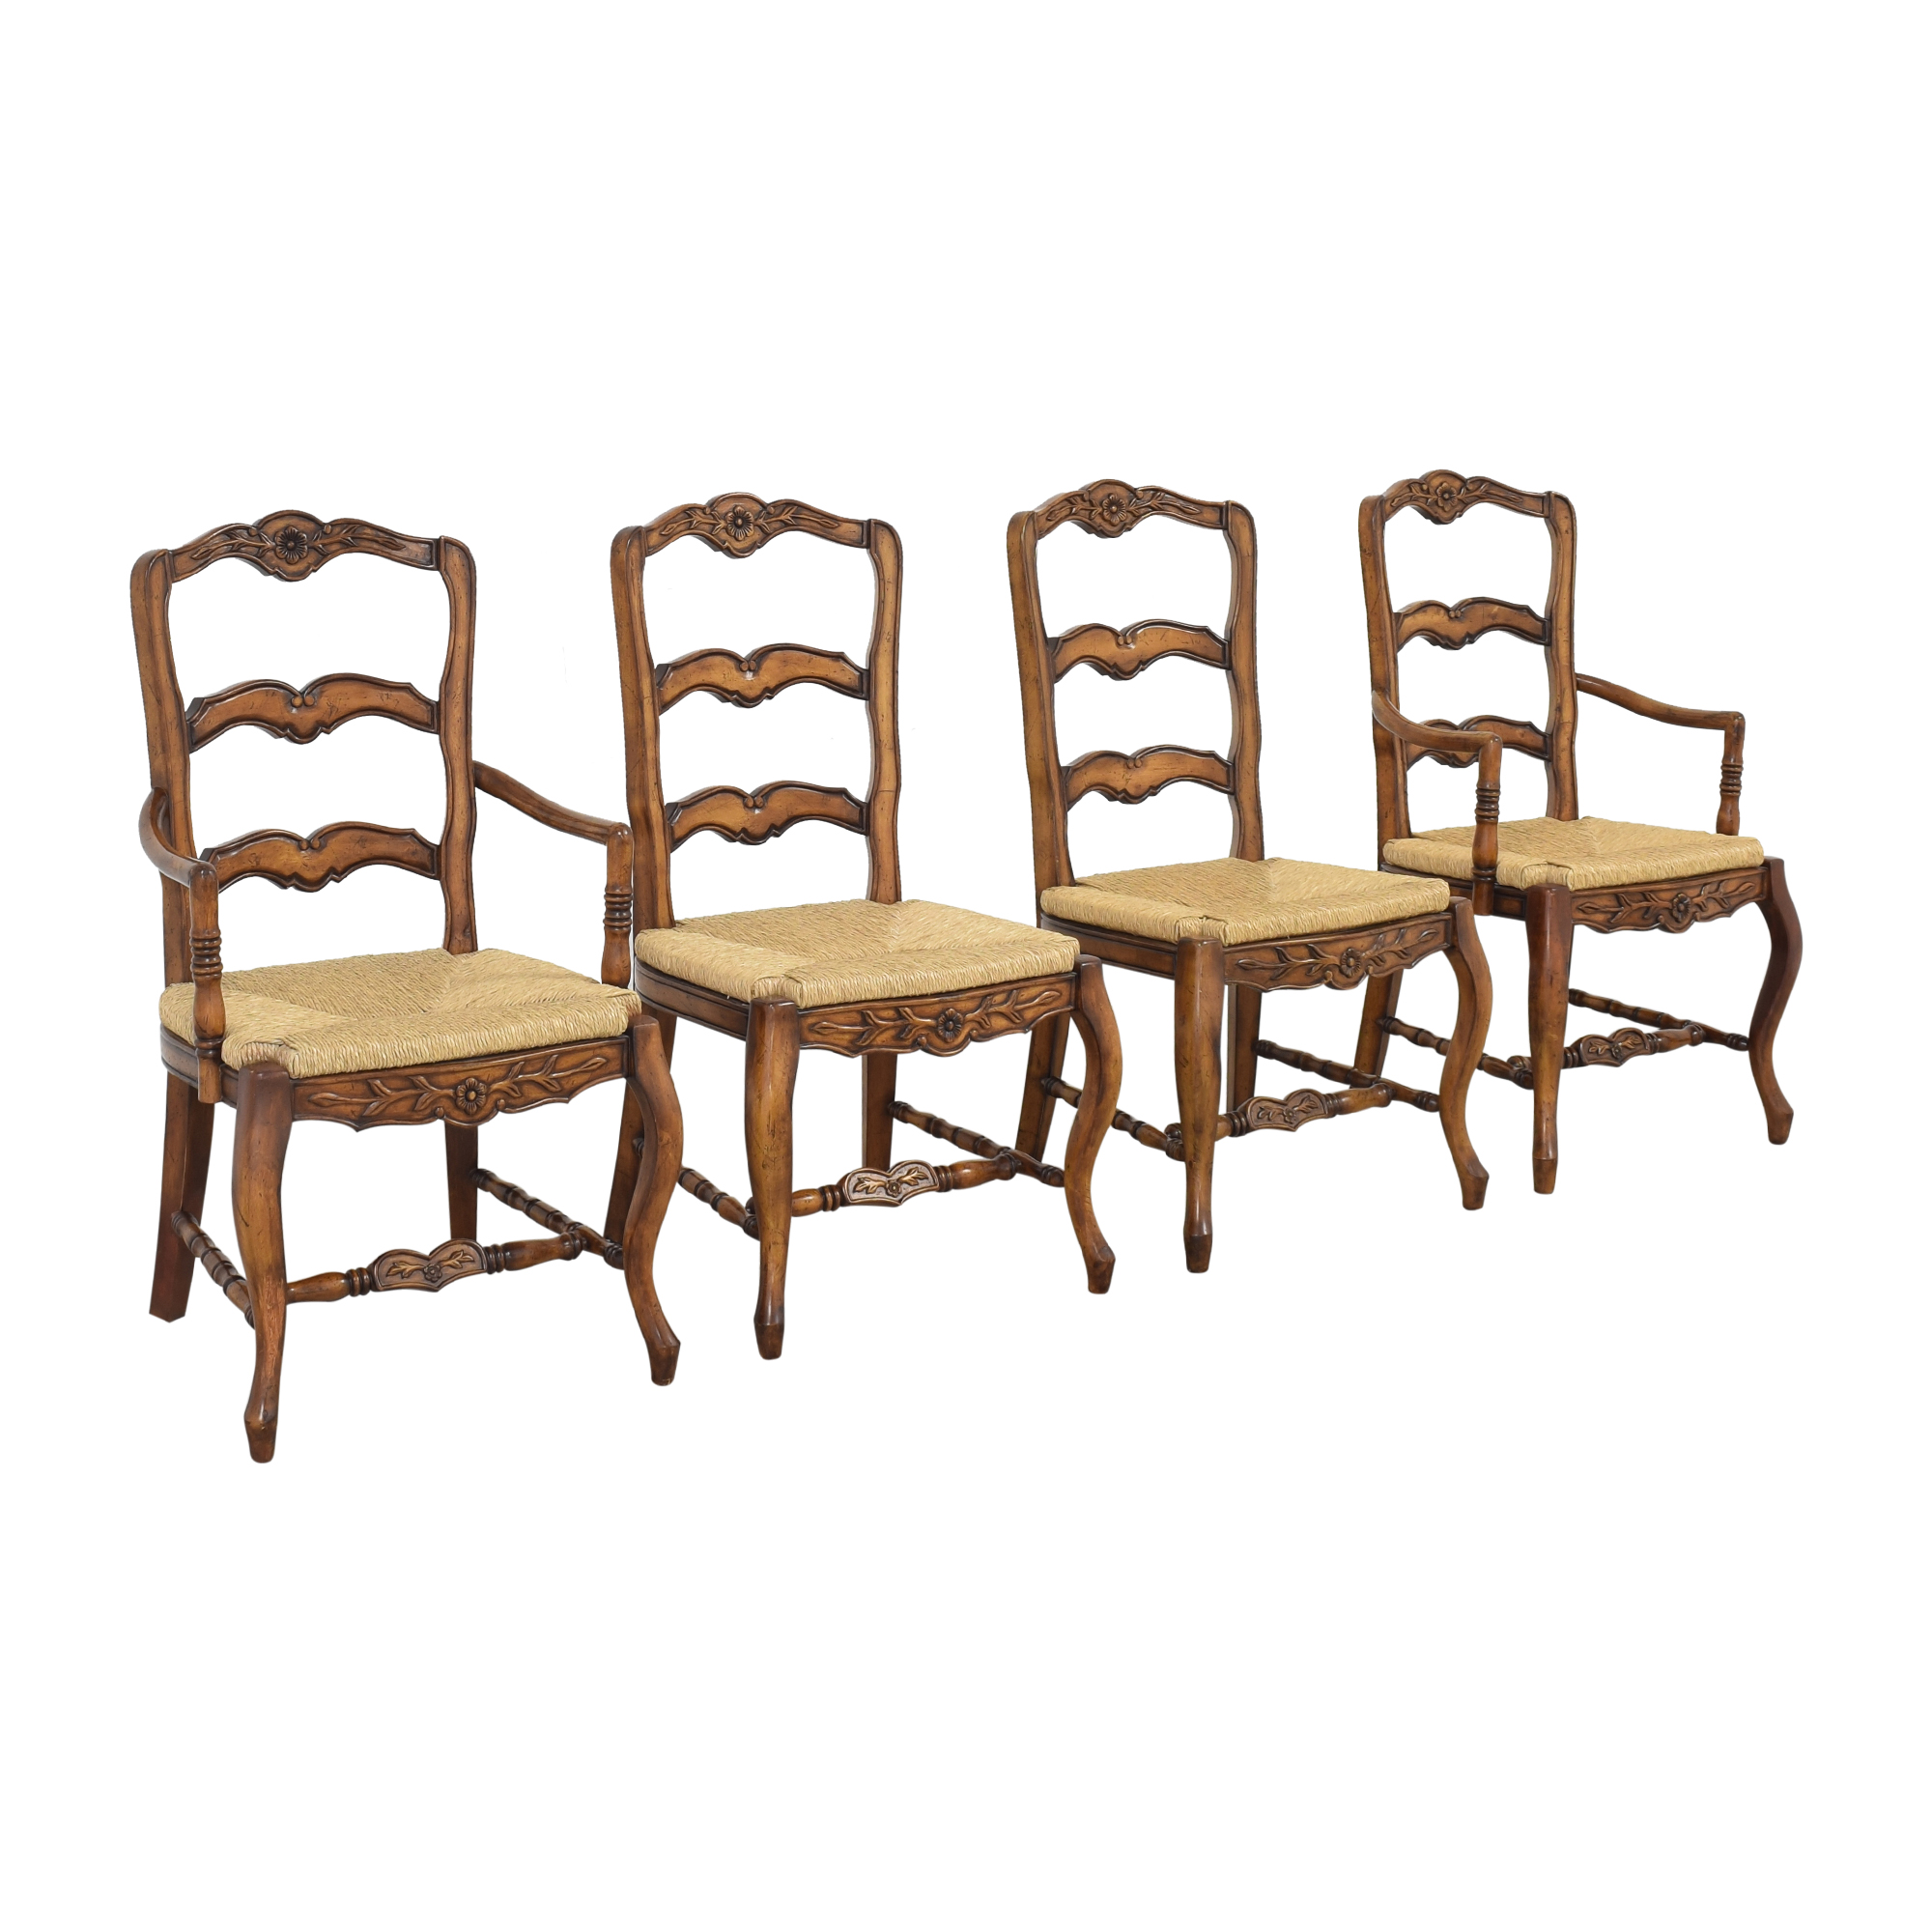 Artistica Artistica Cane Dining Chairs price